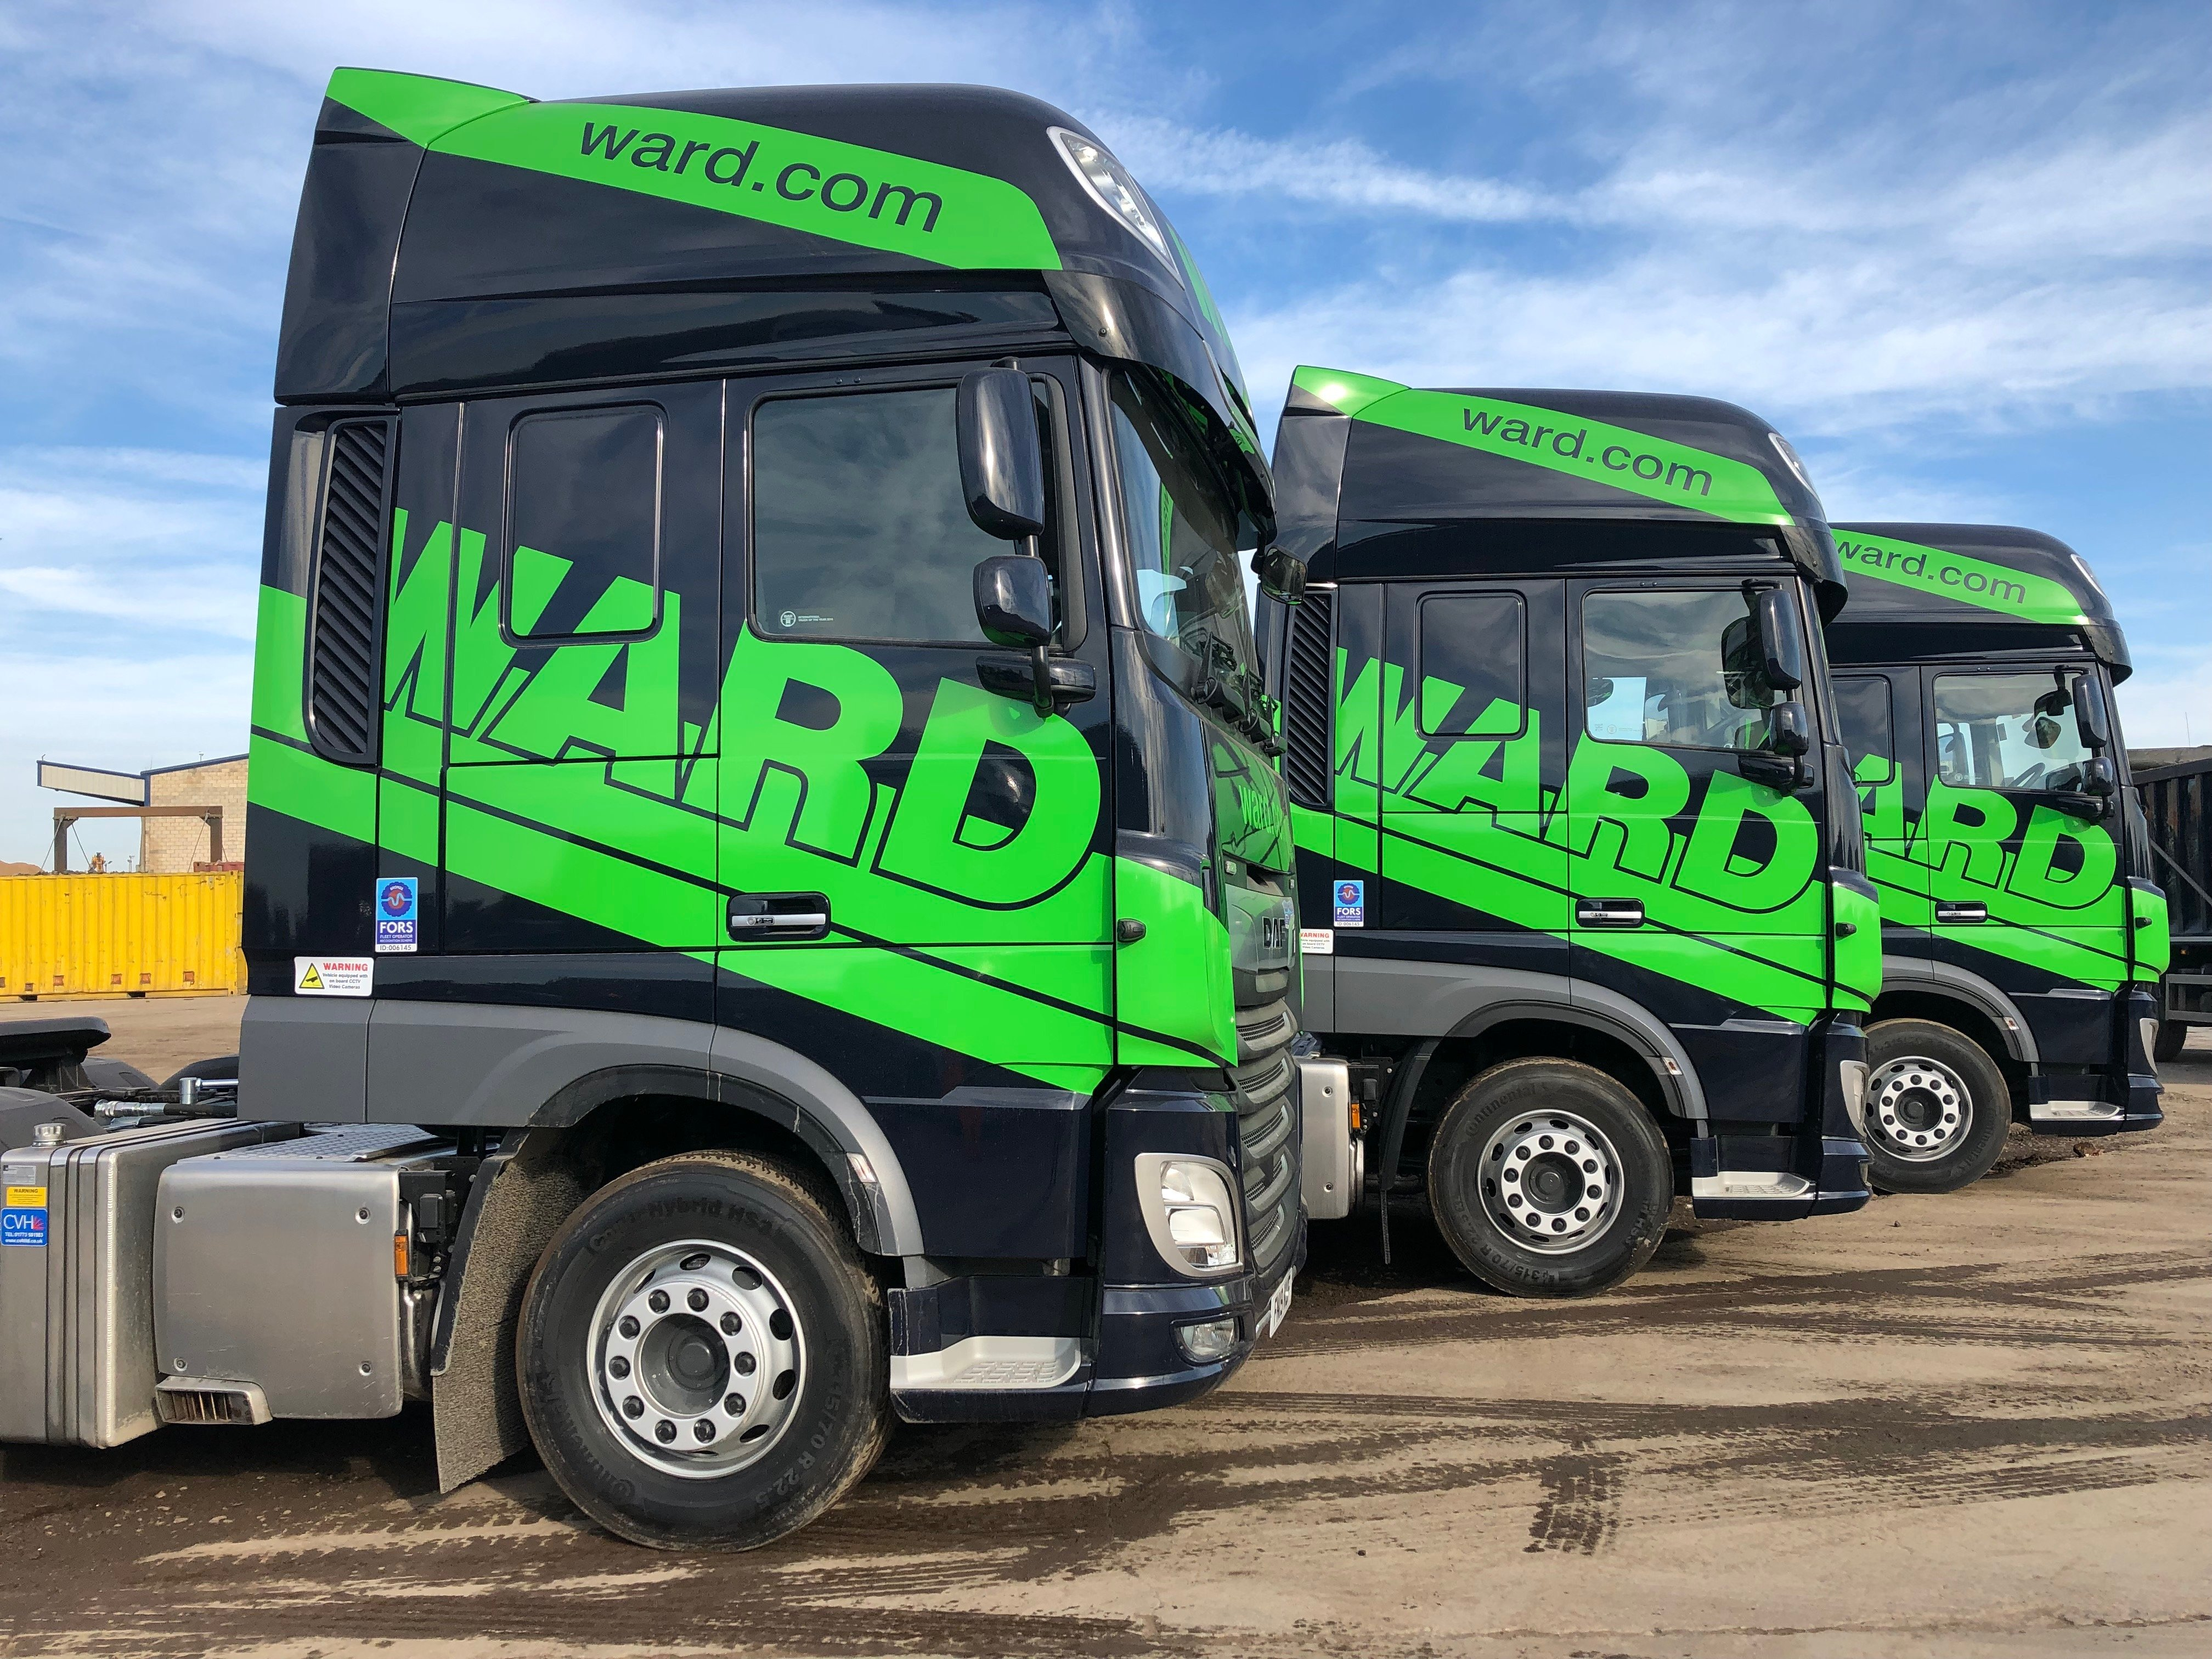 Ward invests over £2million in expanding waste management vehicle fleet